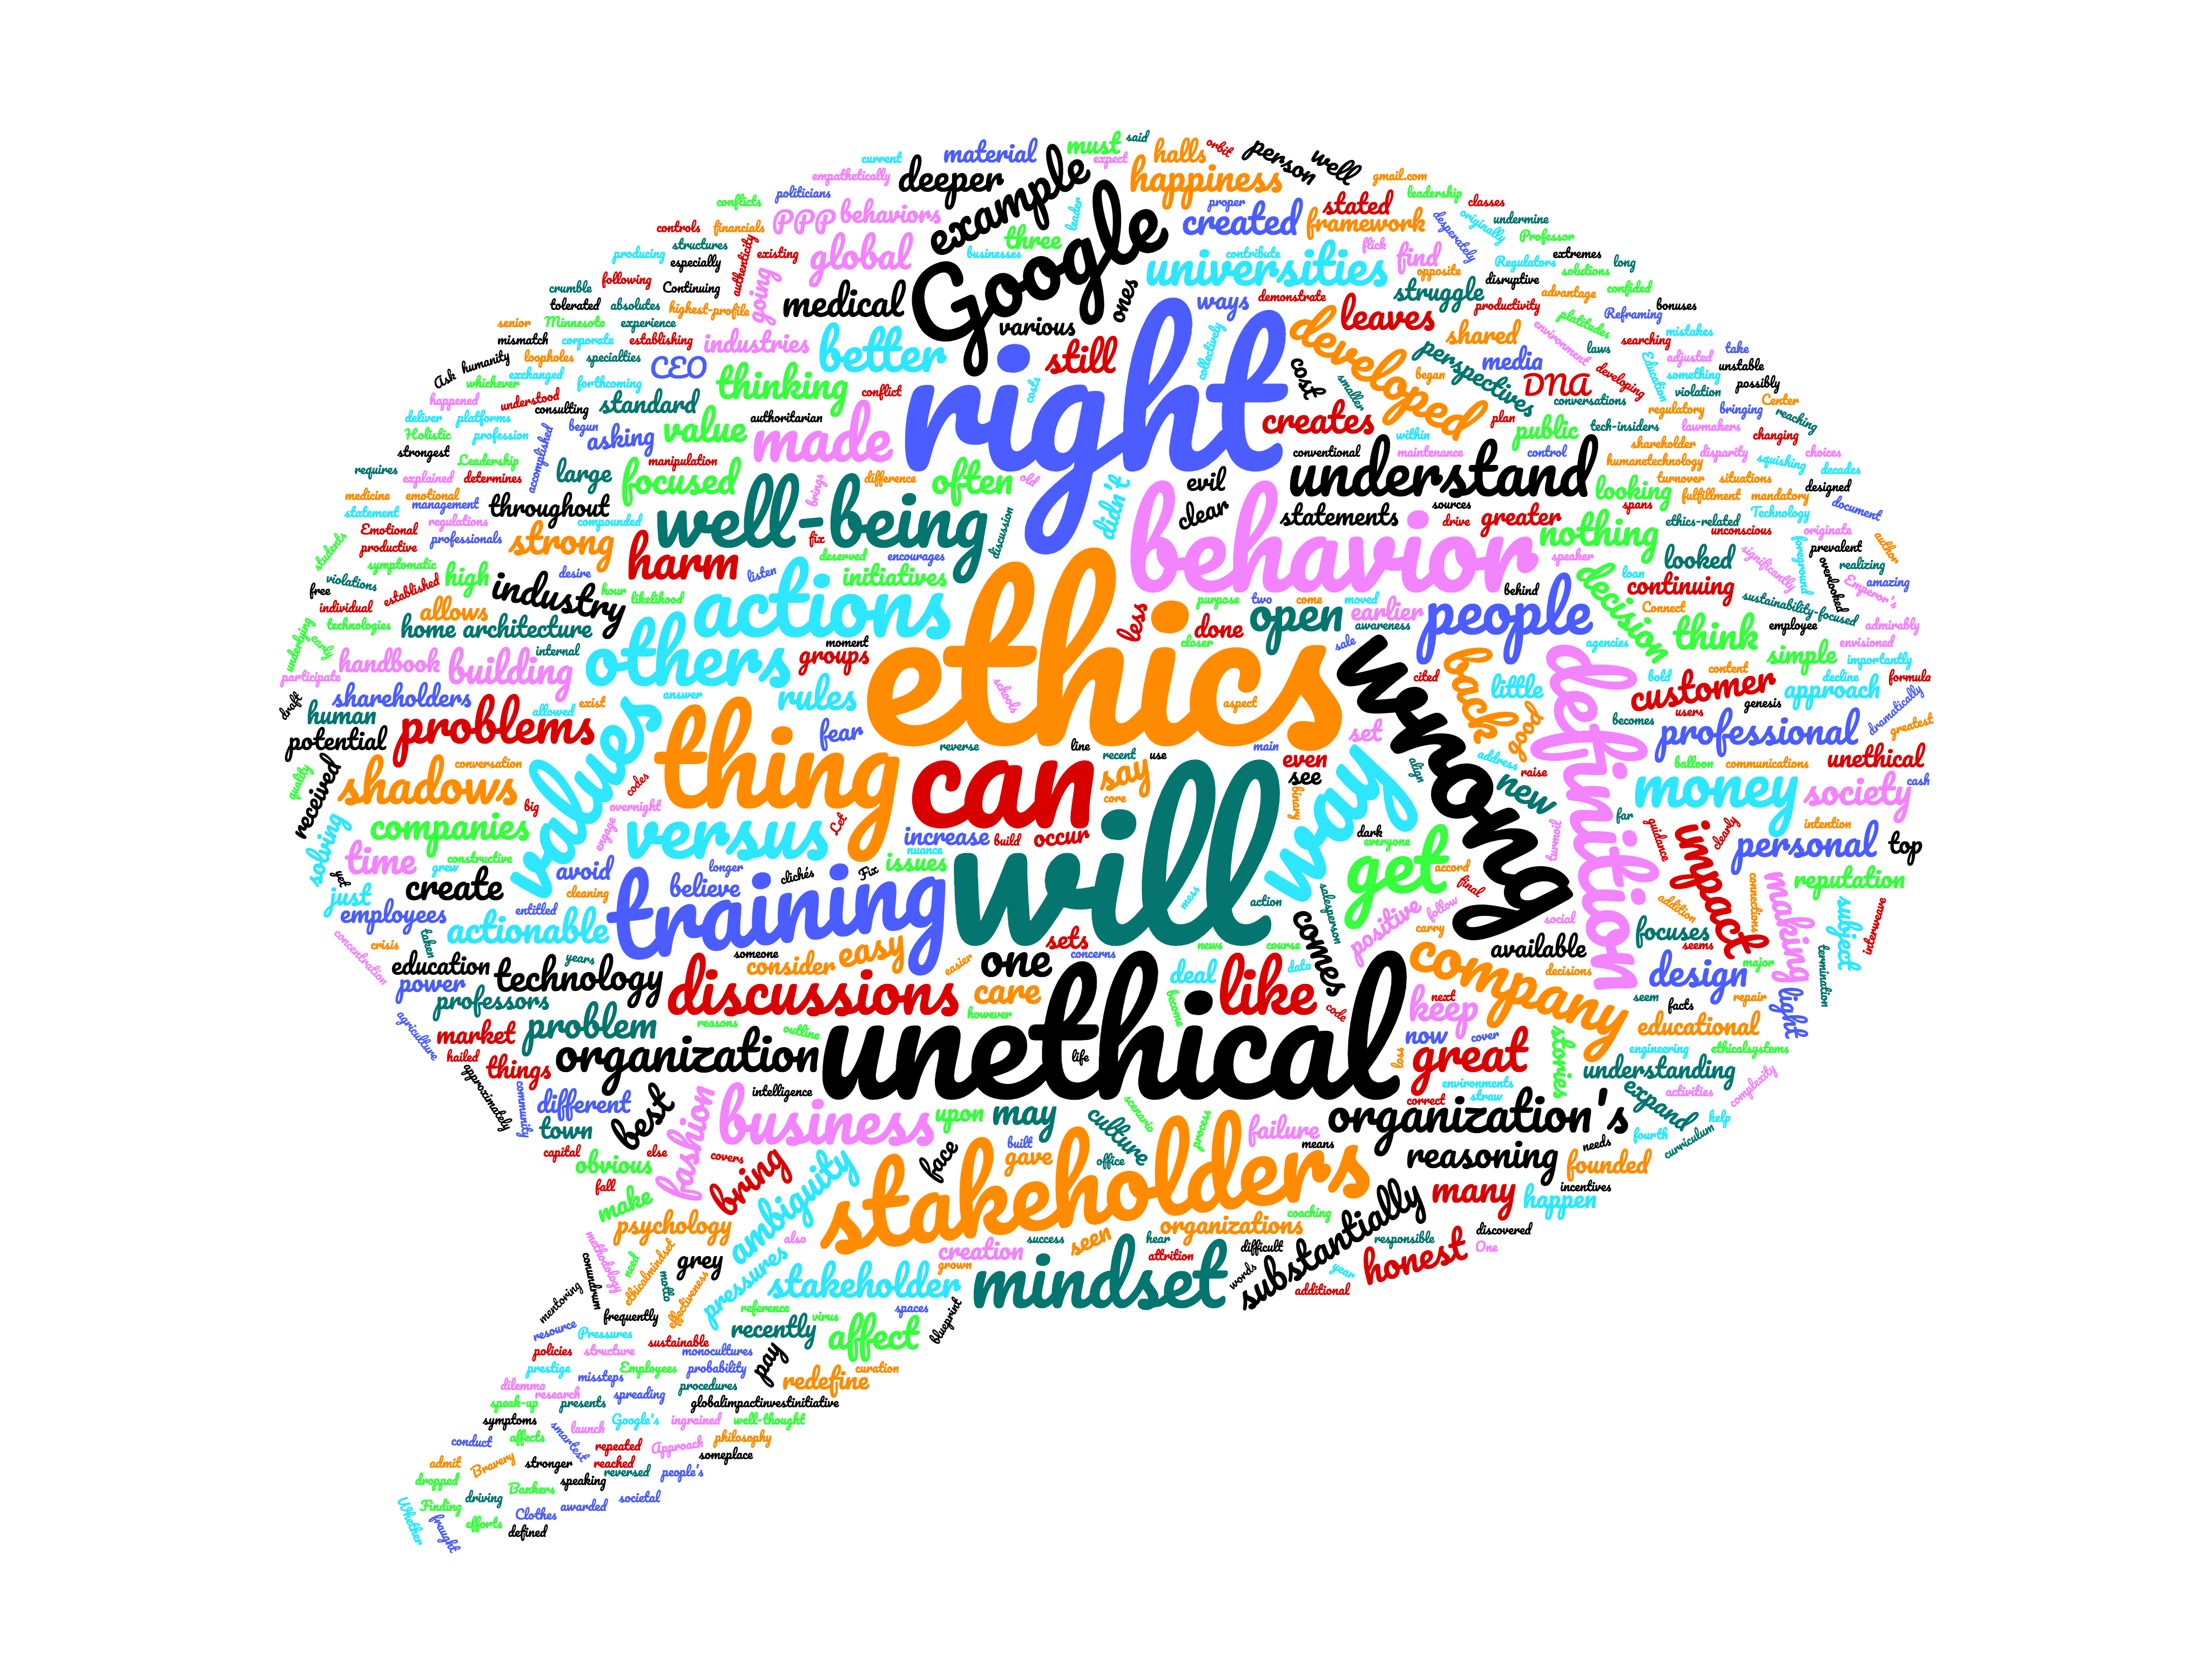 word cloud of An Ethical Mindset